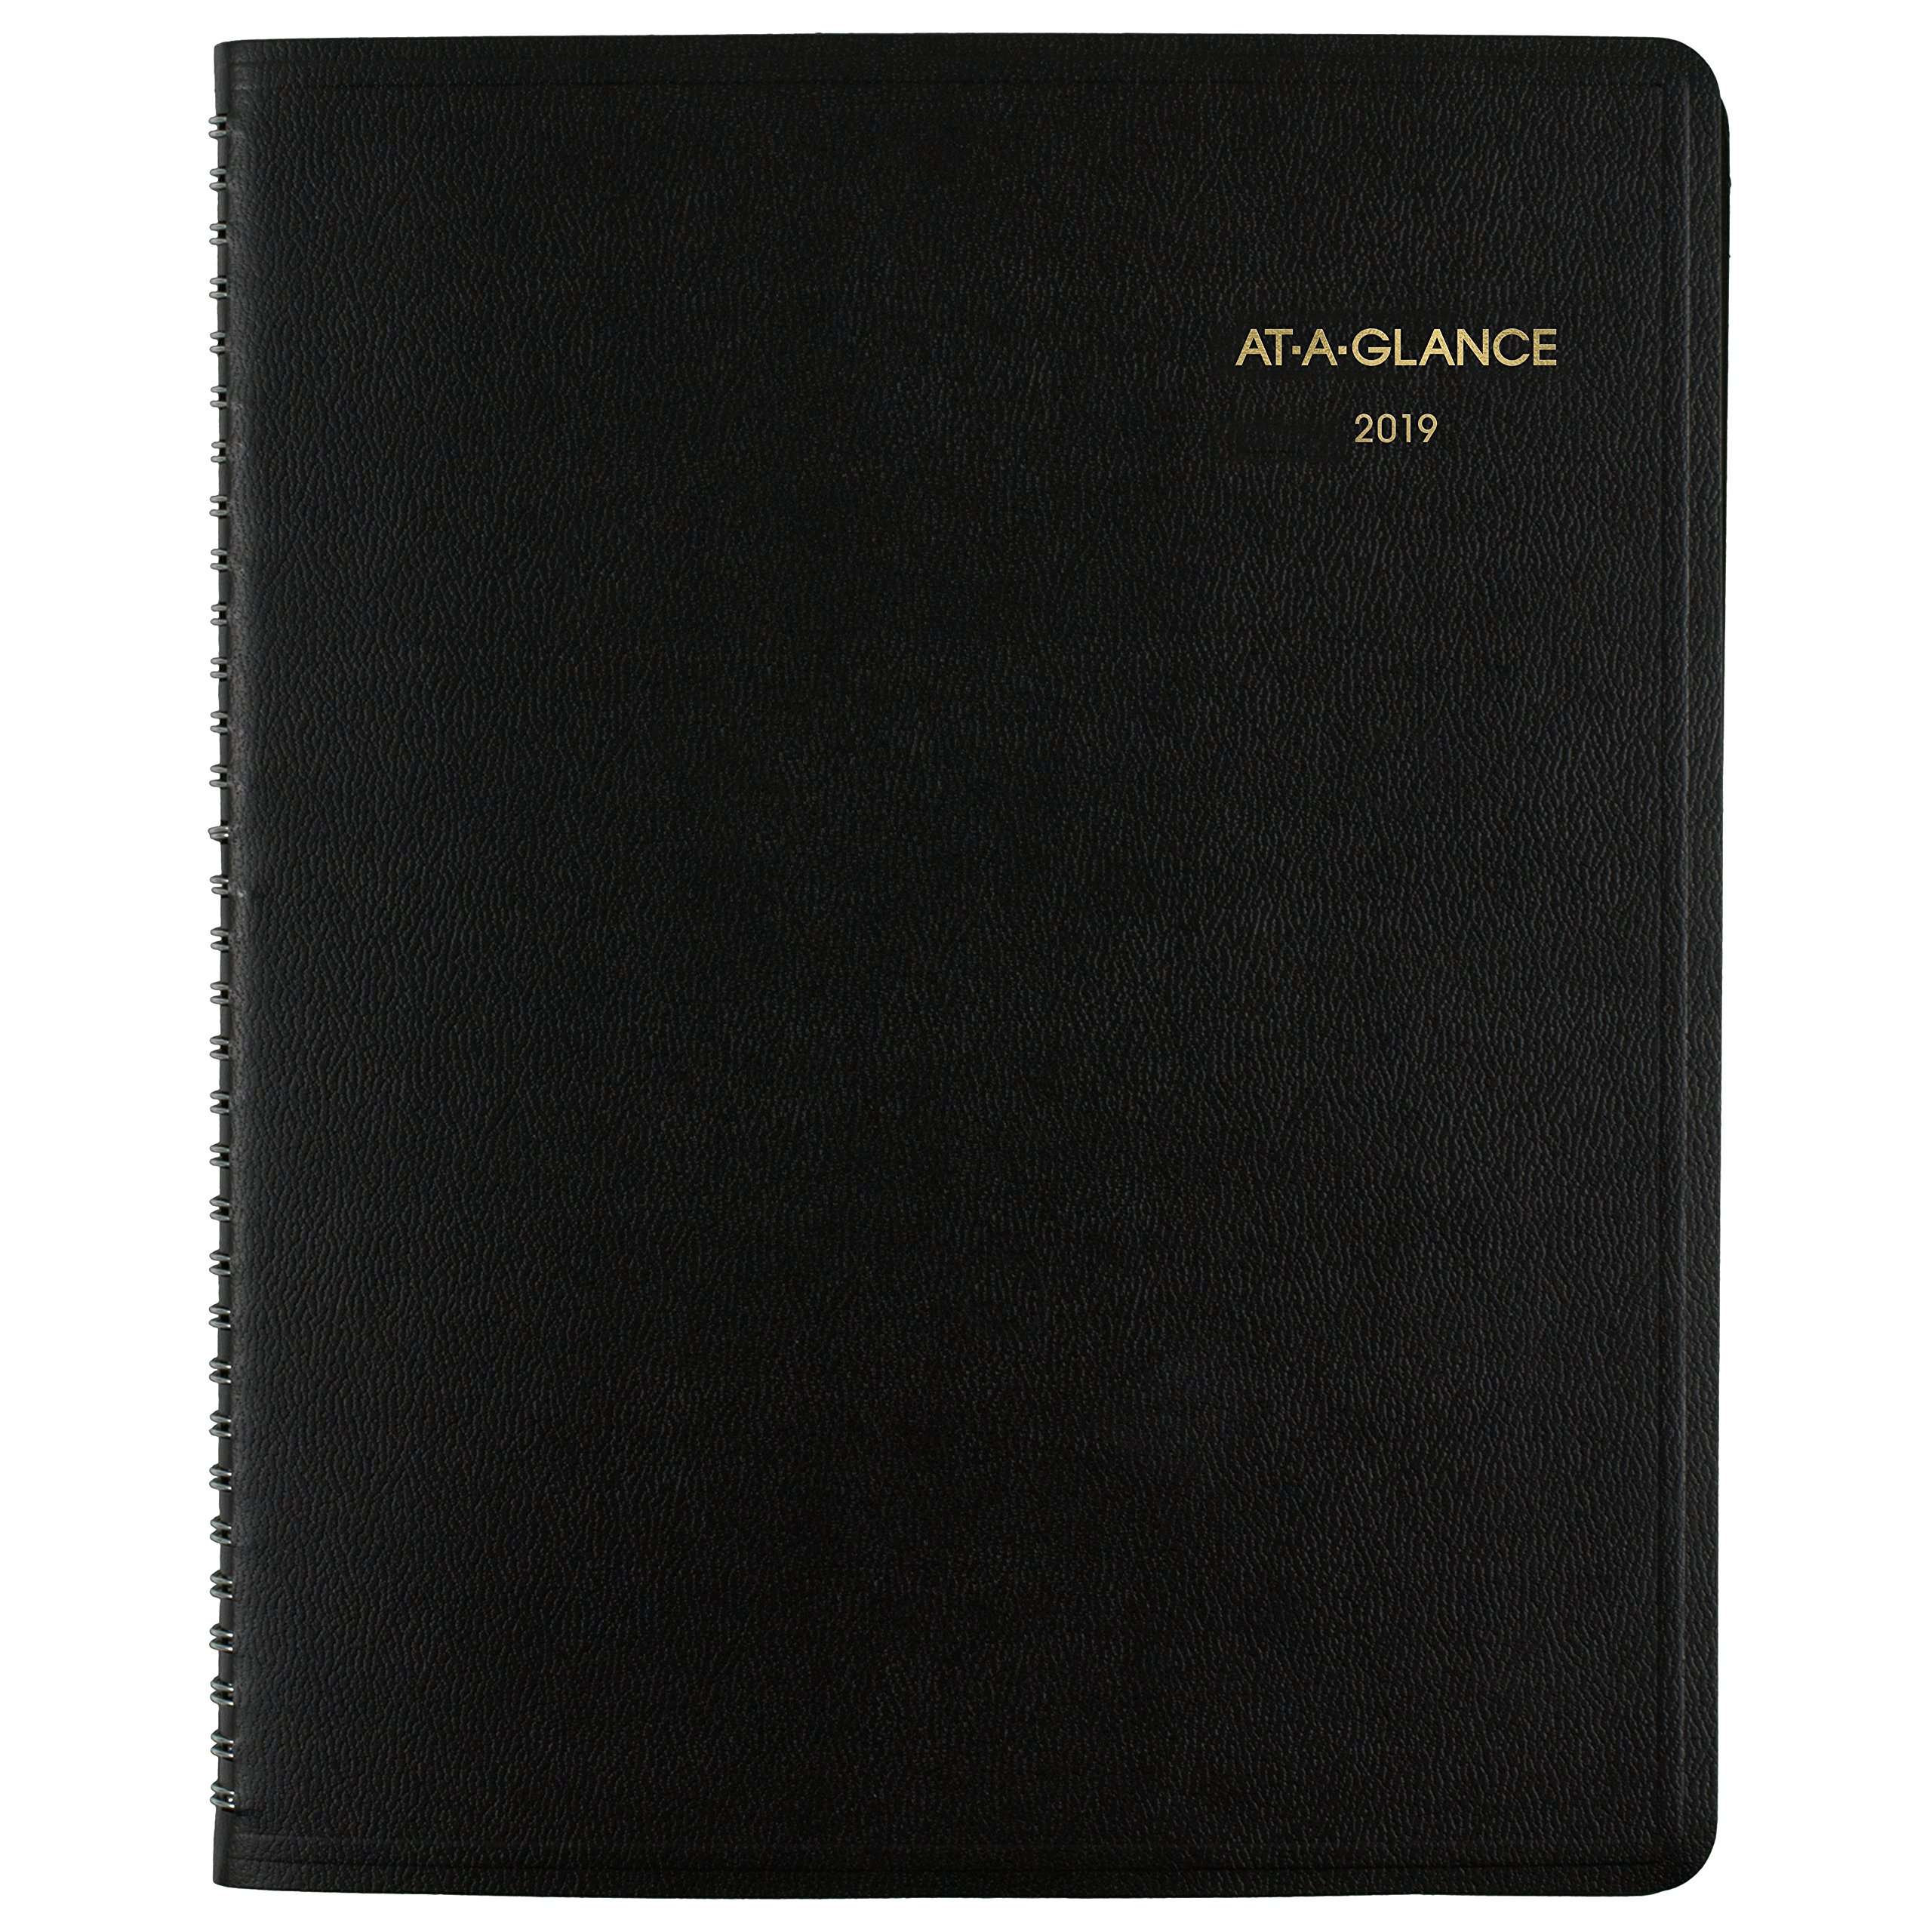 AT-A-GLANCE 2019 Weekly & Monthly Appointment Book, 8-1/2'' x 11'', Large, Triple-View, Black (70950V05)